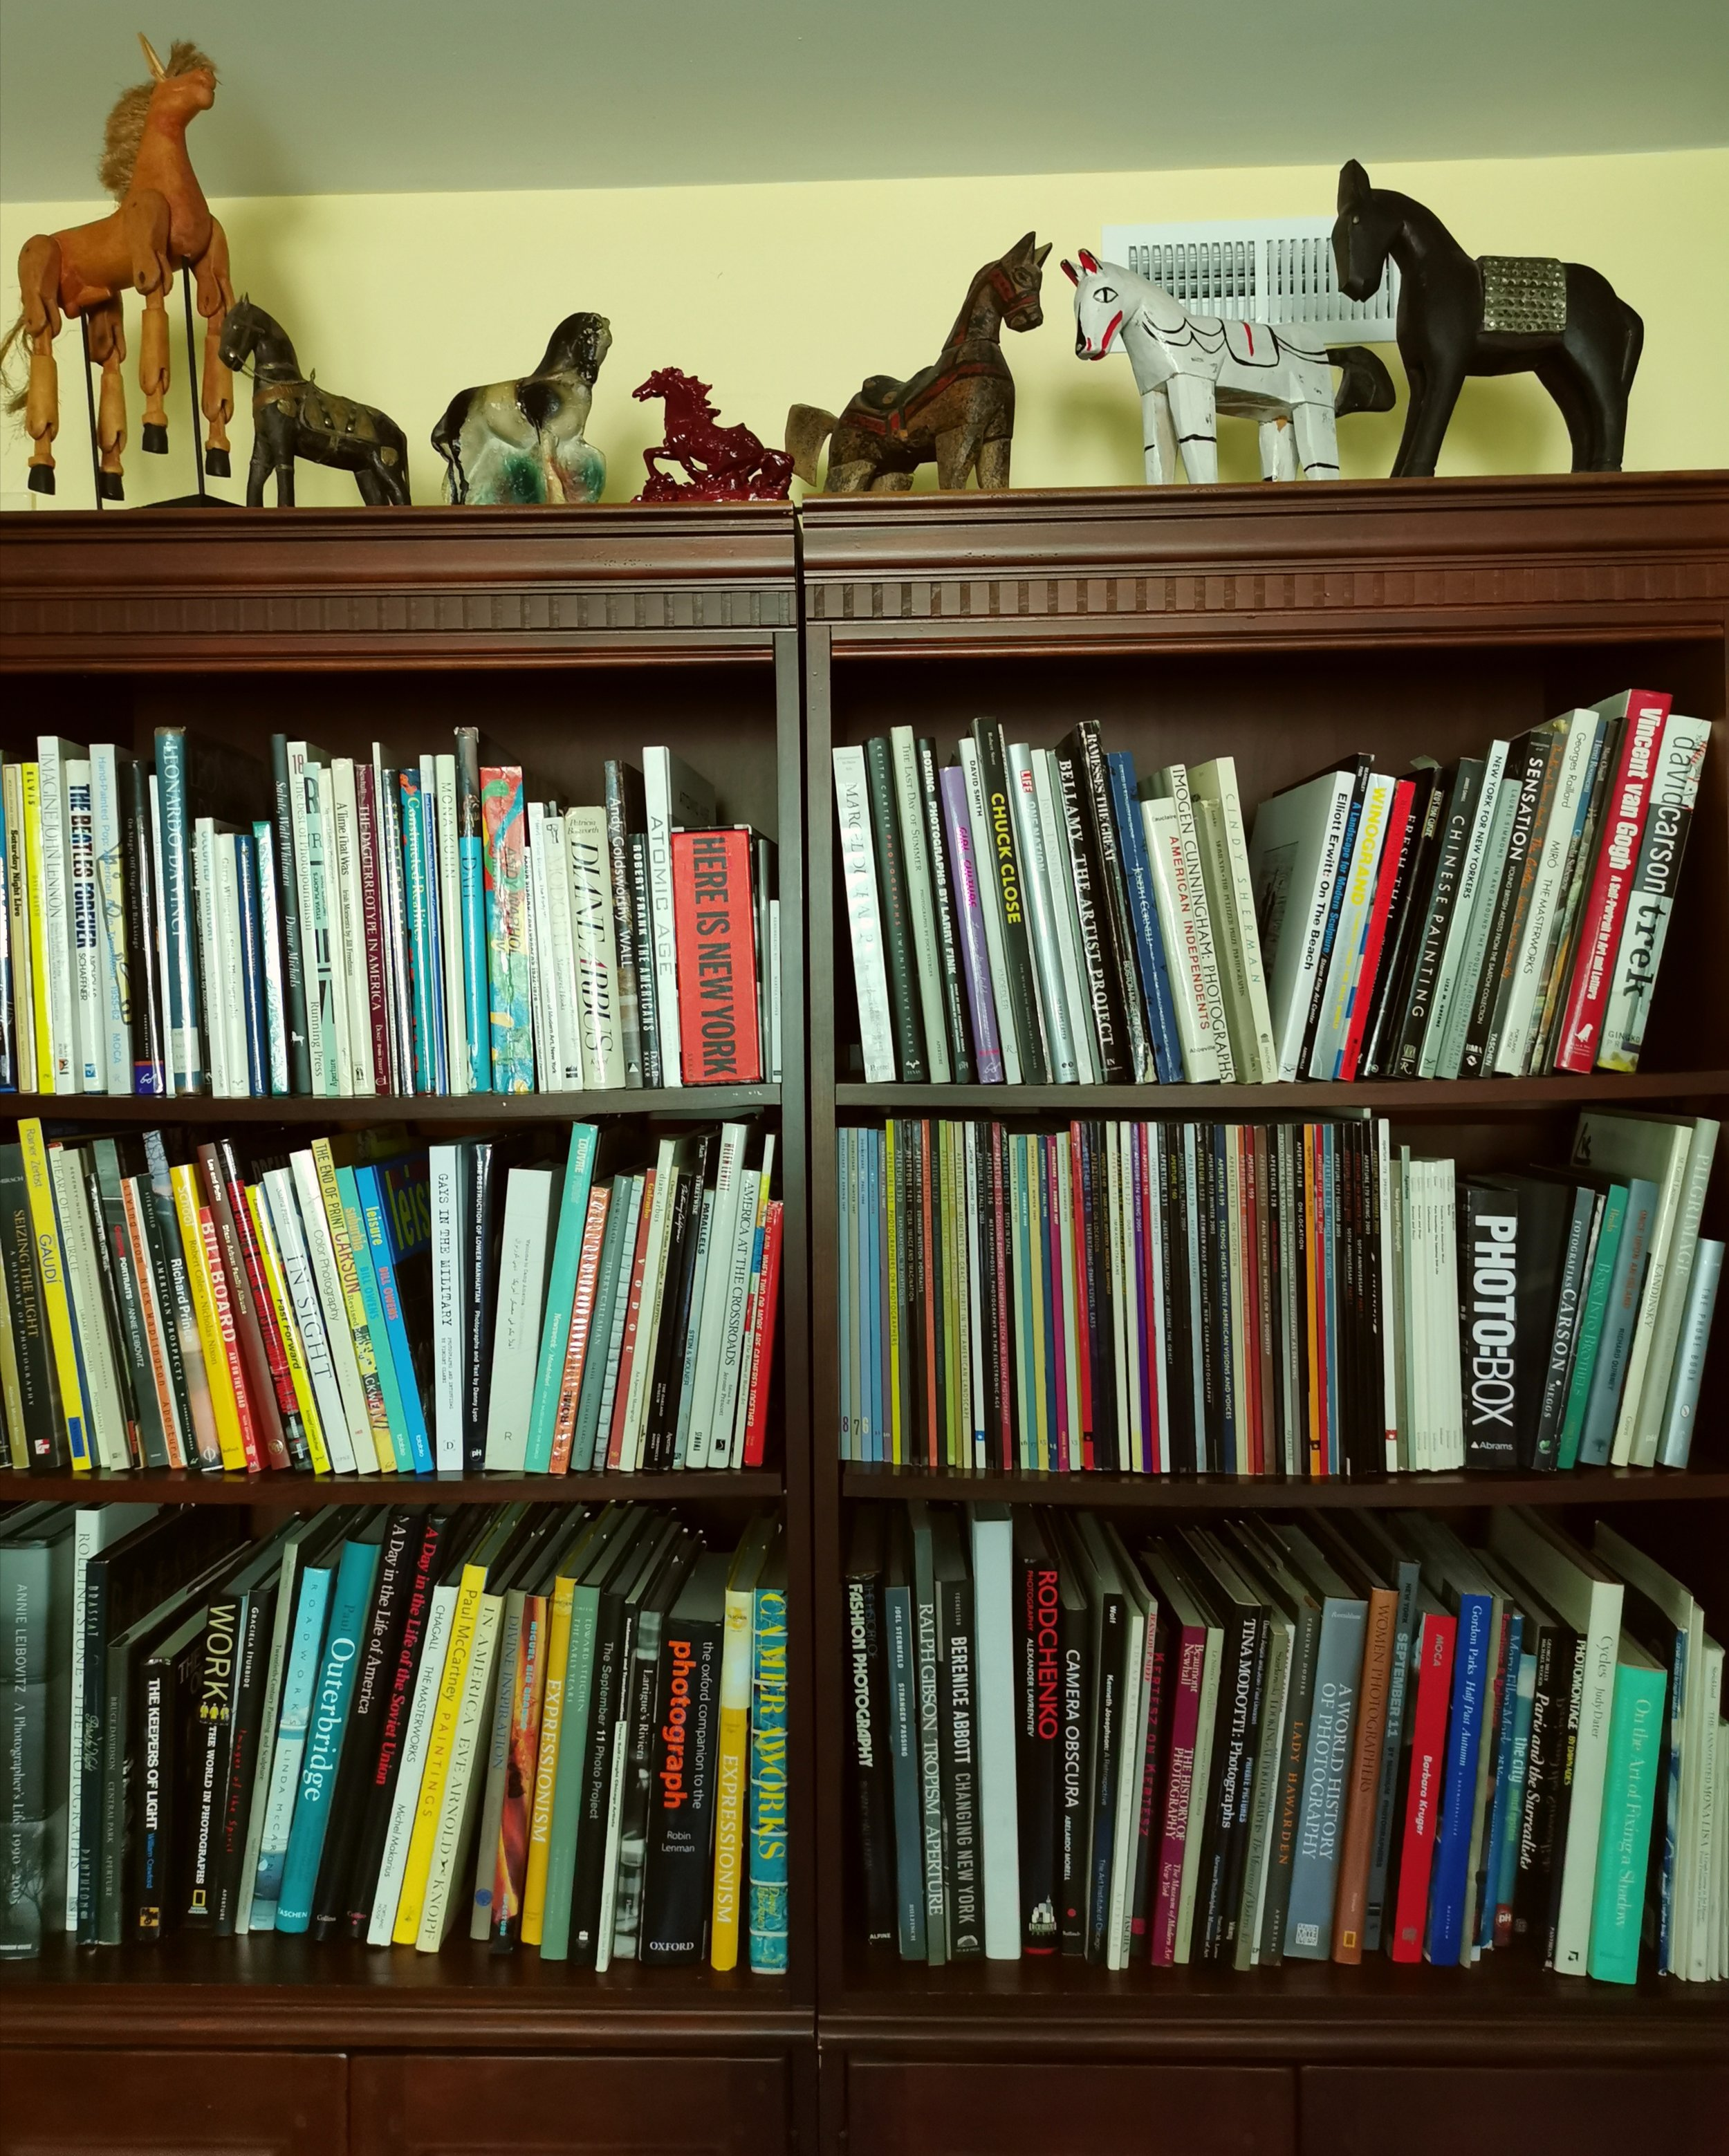 Horses stand guard over Marie Triller's photography book collection.